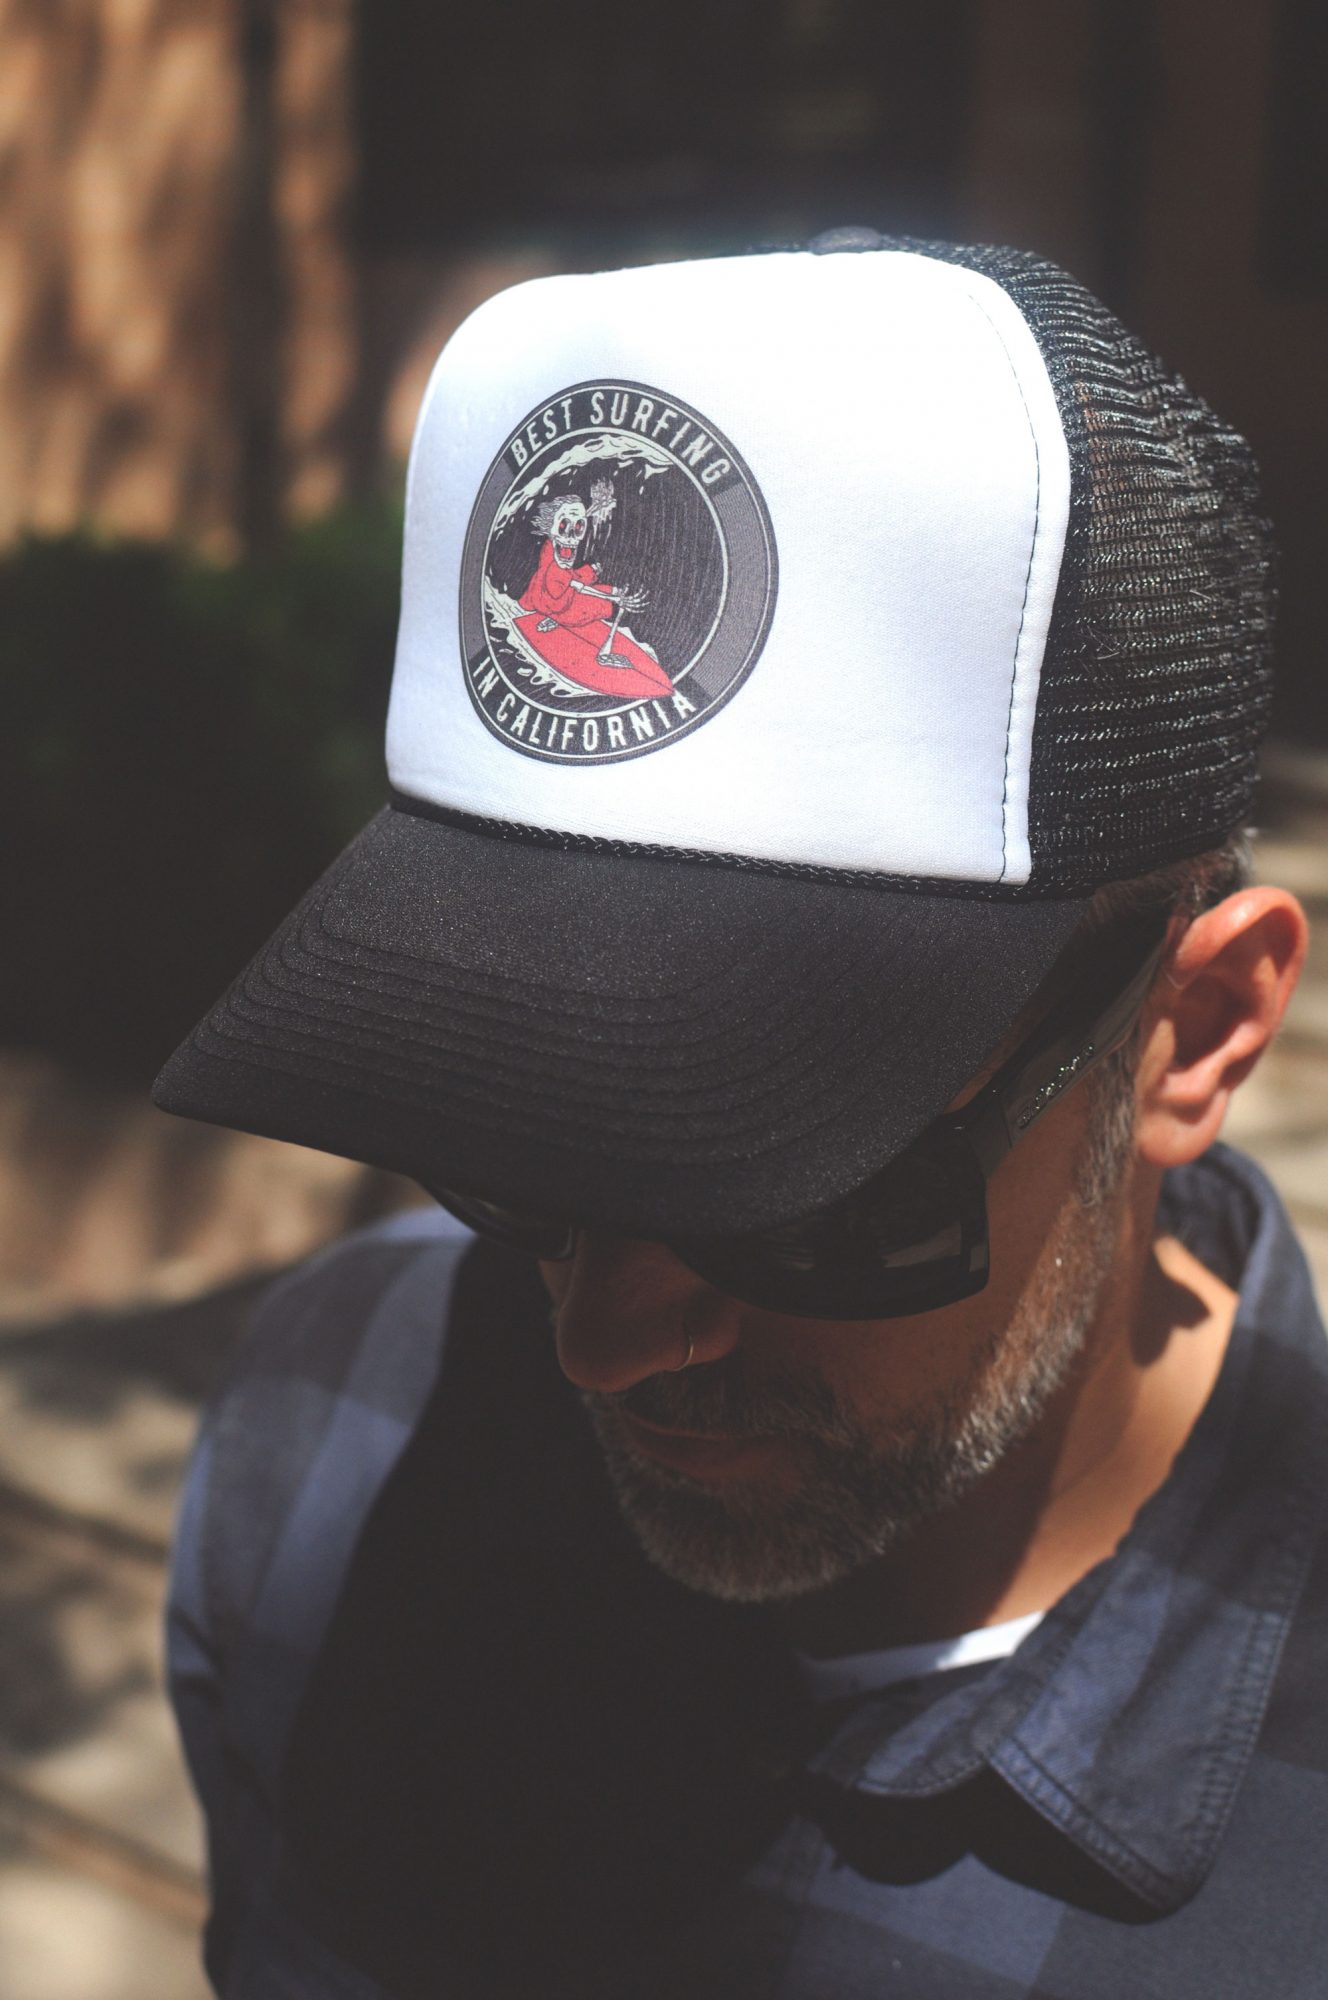 man wearing cap mockup logo preview